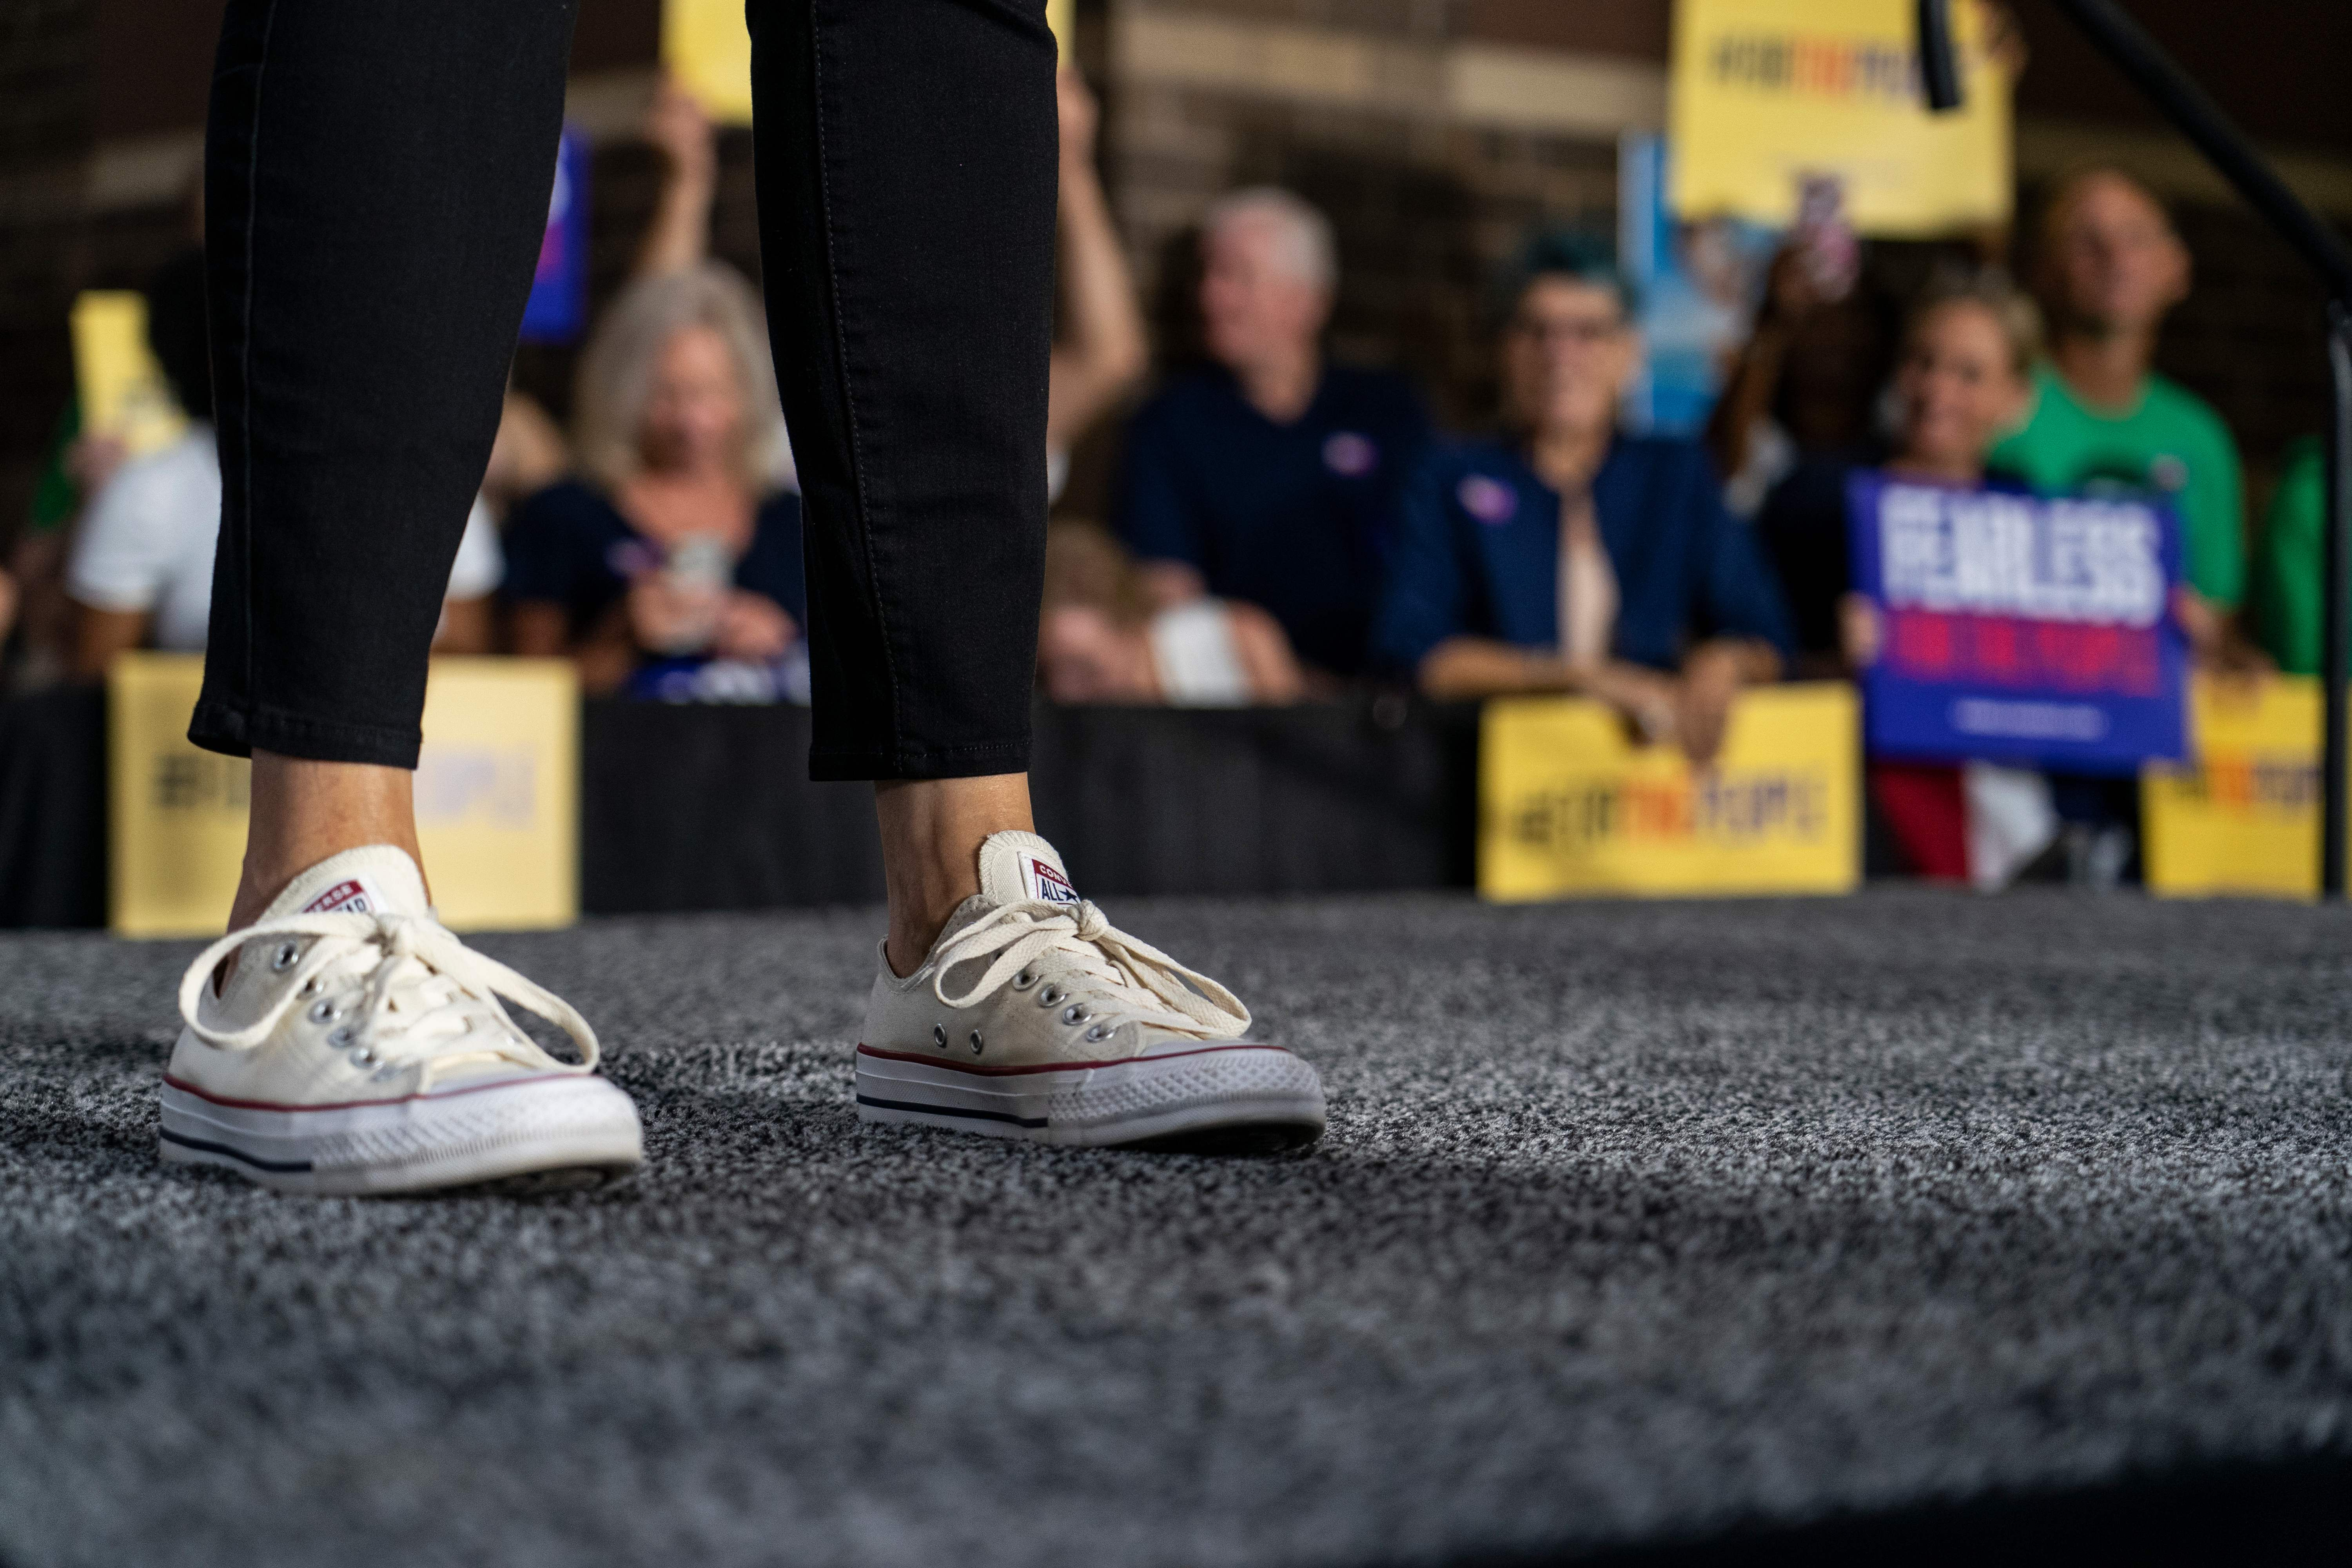 Torneado recinto Delgado  Kamala Harris shoe choice: Video of Harris in Chuck Taylor All-Stars  Converse goes viral - The Washington Post